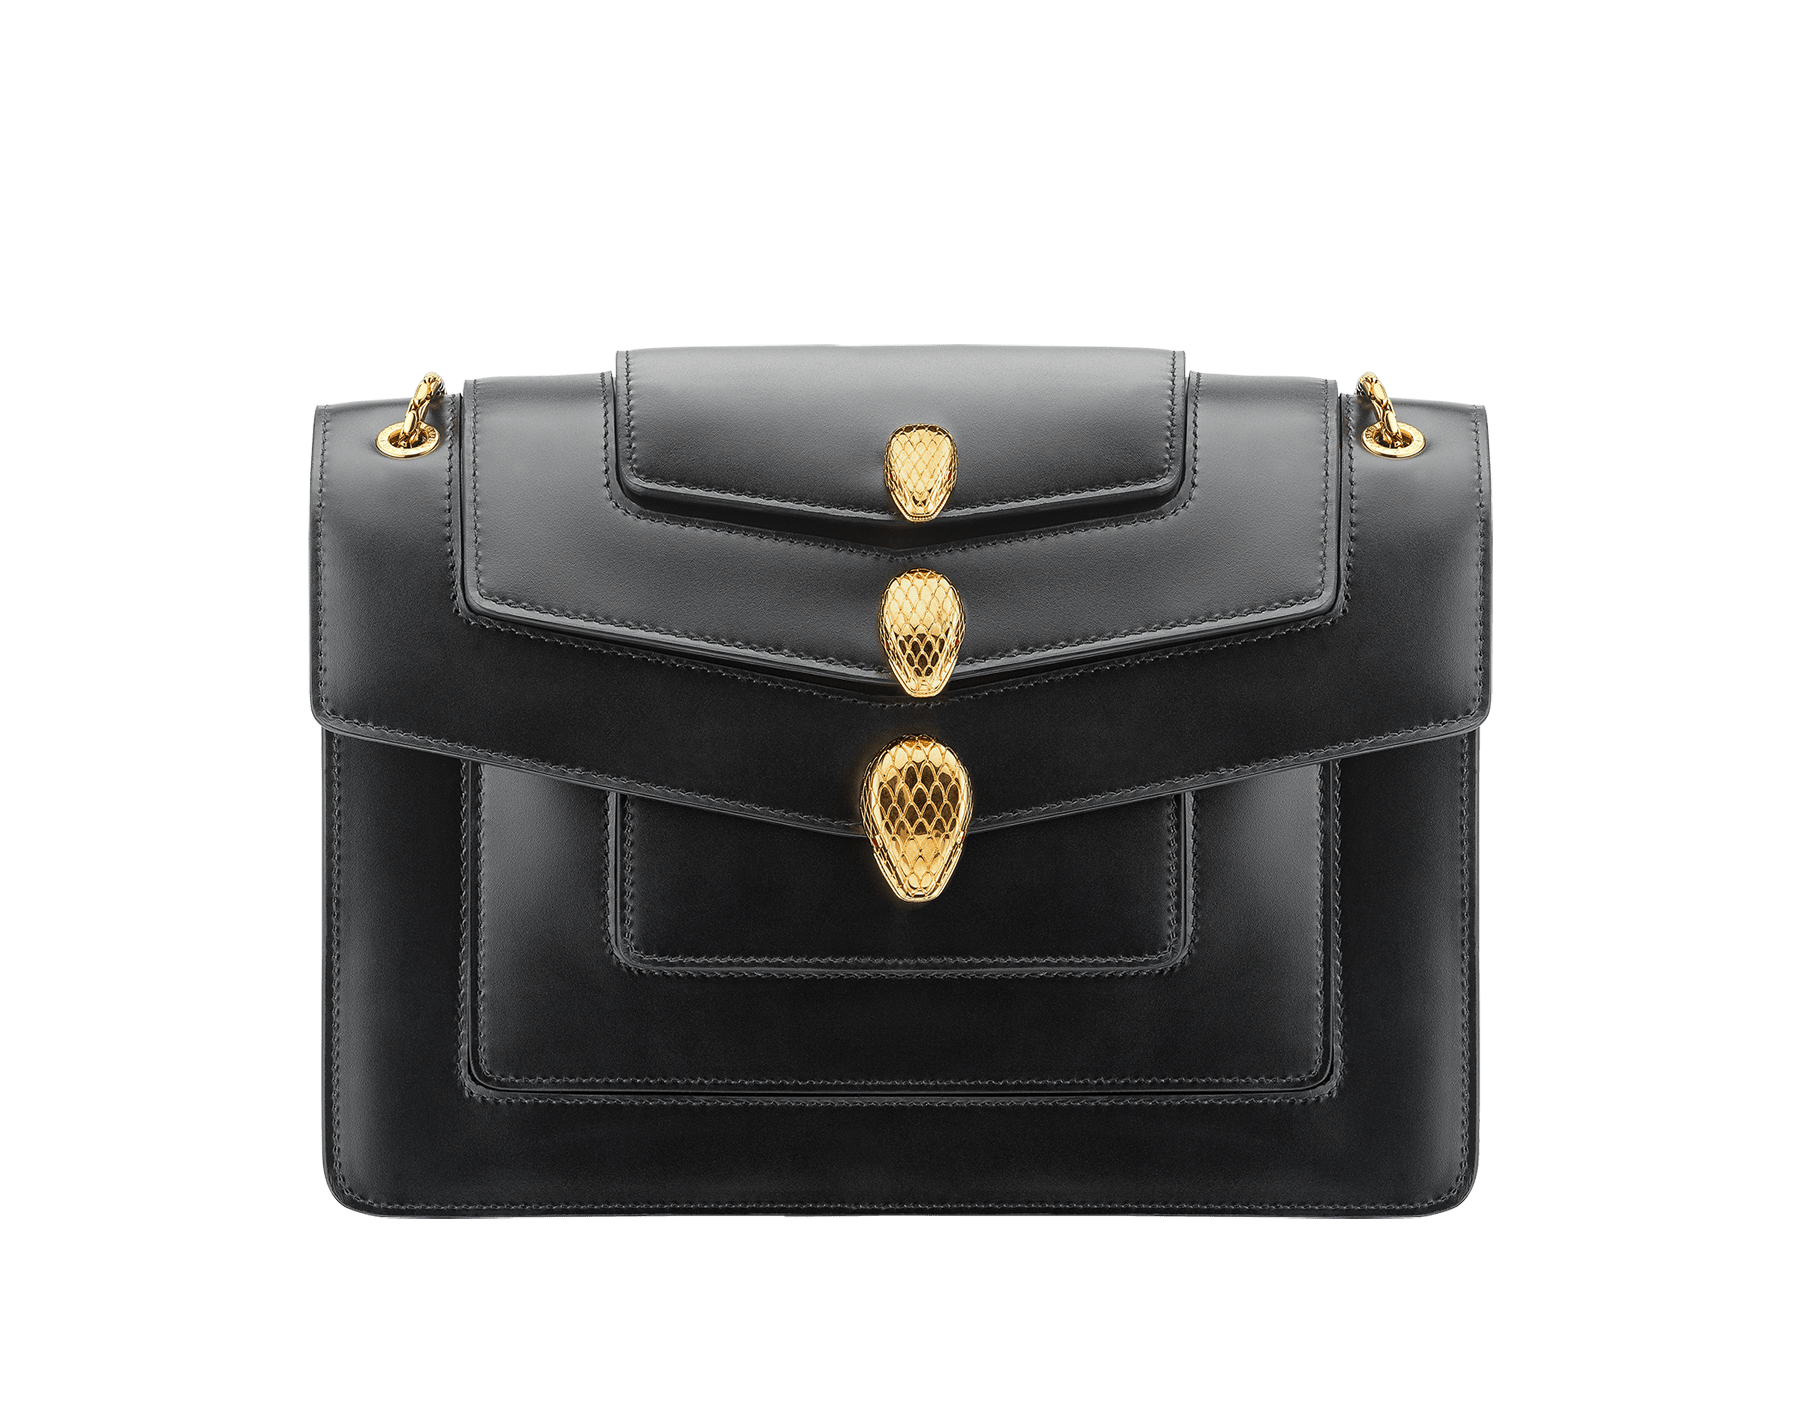 Alexander Wang x Bvlgari Triplette shoulder bag in smooth black calf leather. New triple Serpenti head closure in antique gold plated brass with tempting red enamel eyes. Limited edition. SFW-001-1003M image 1